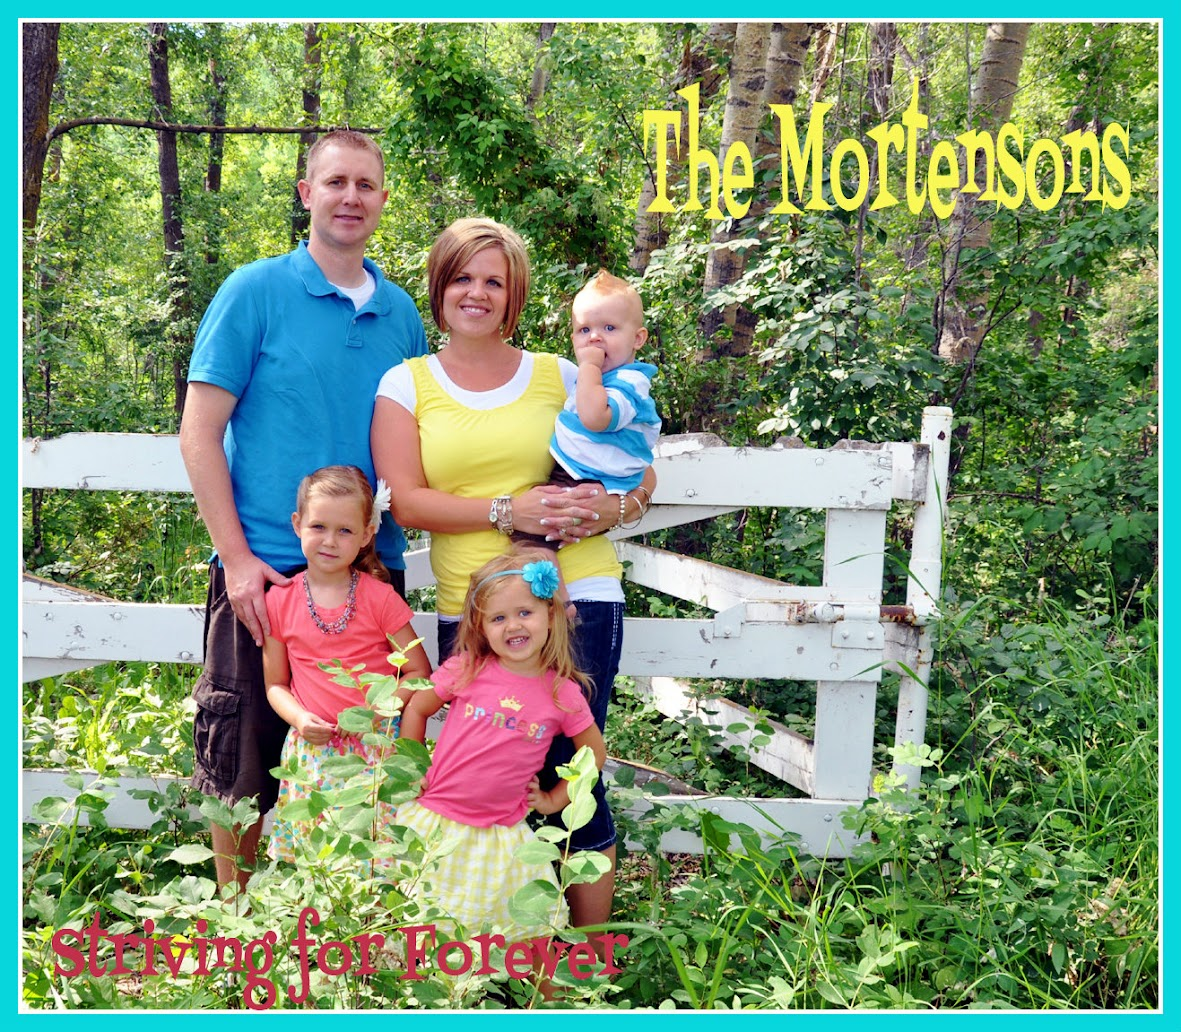 The Mortenson Family